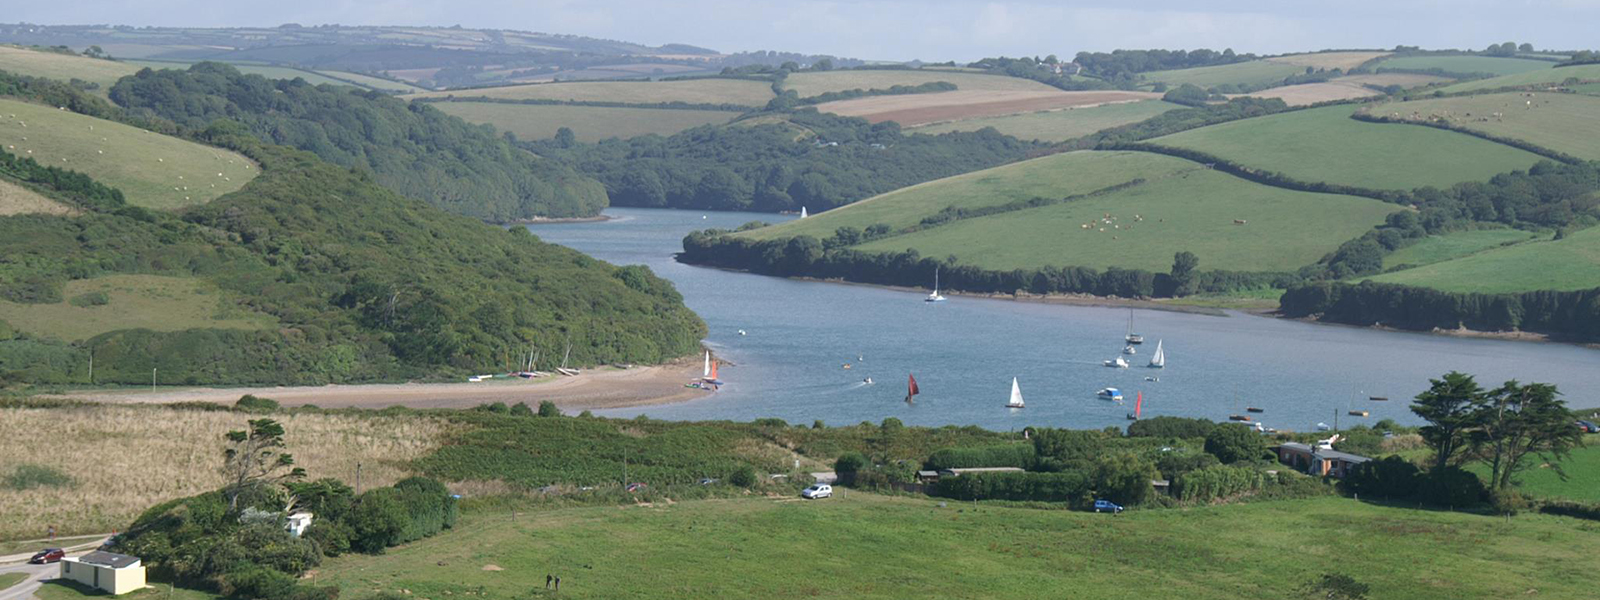 bantham view of the river avon estuary